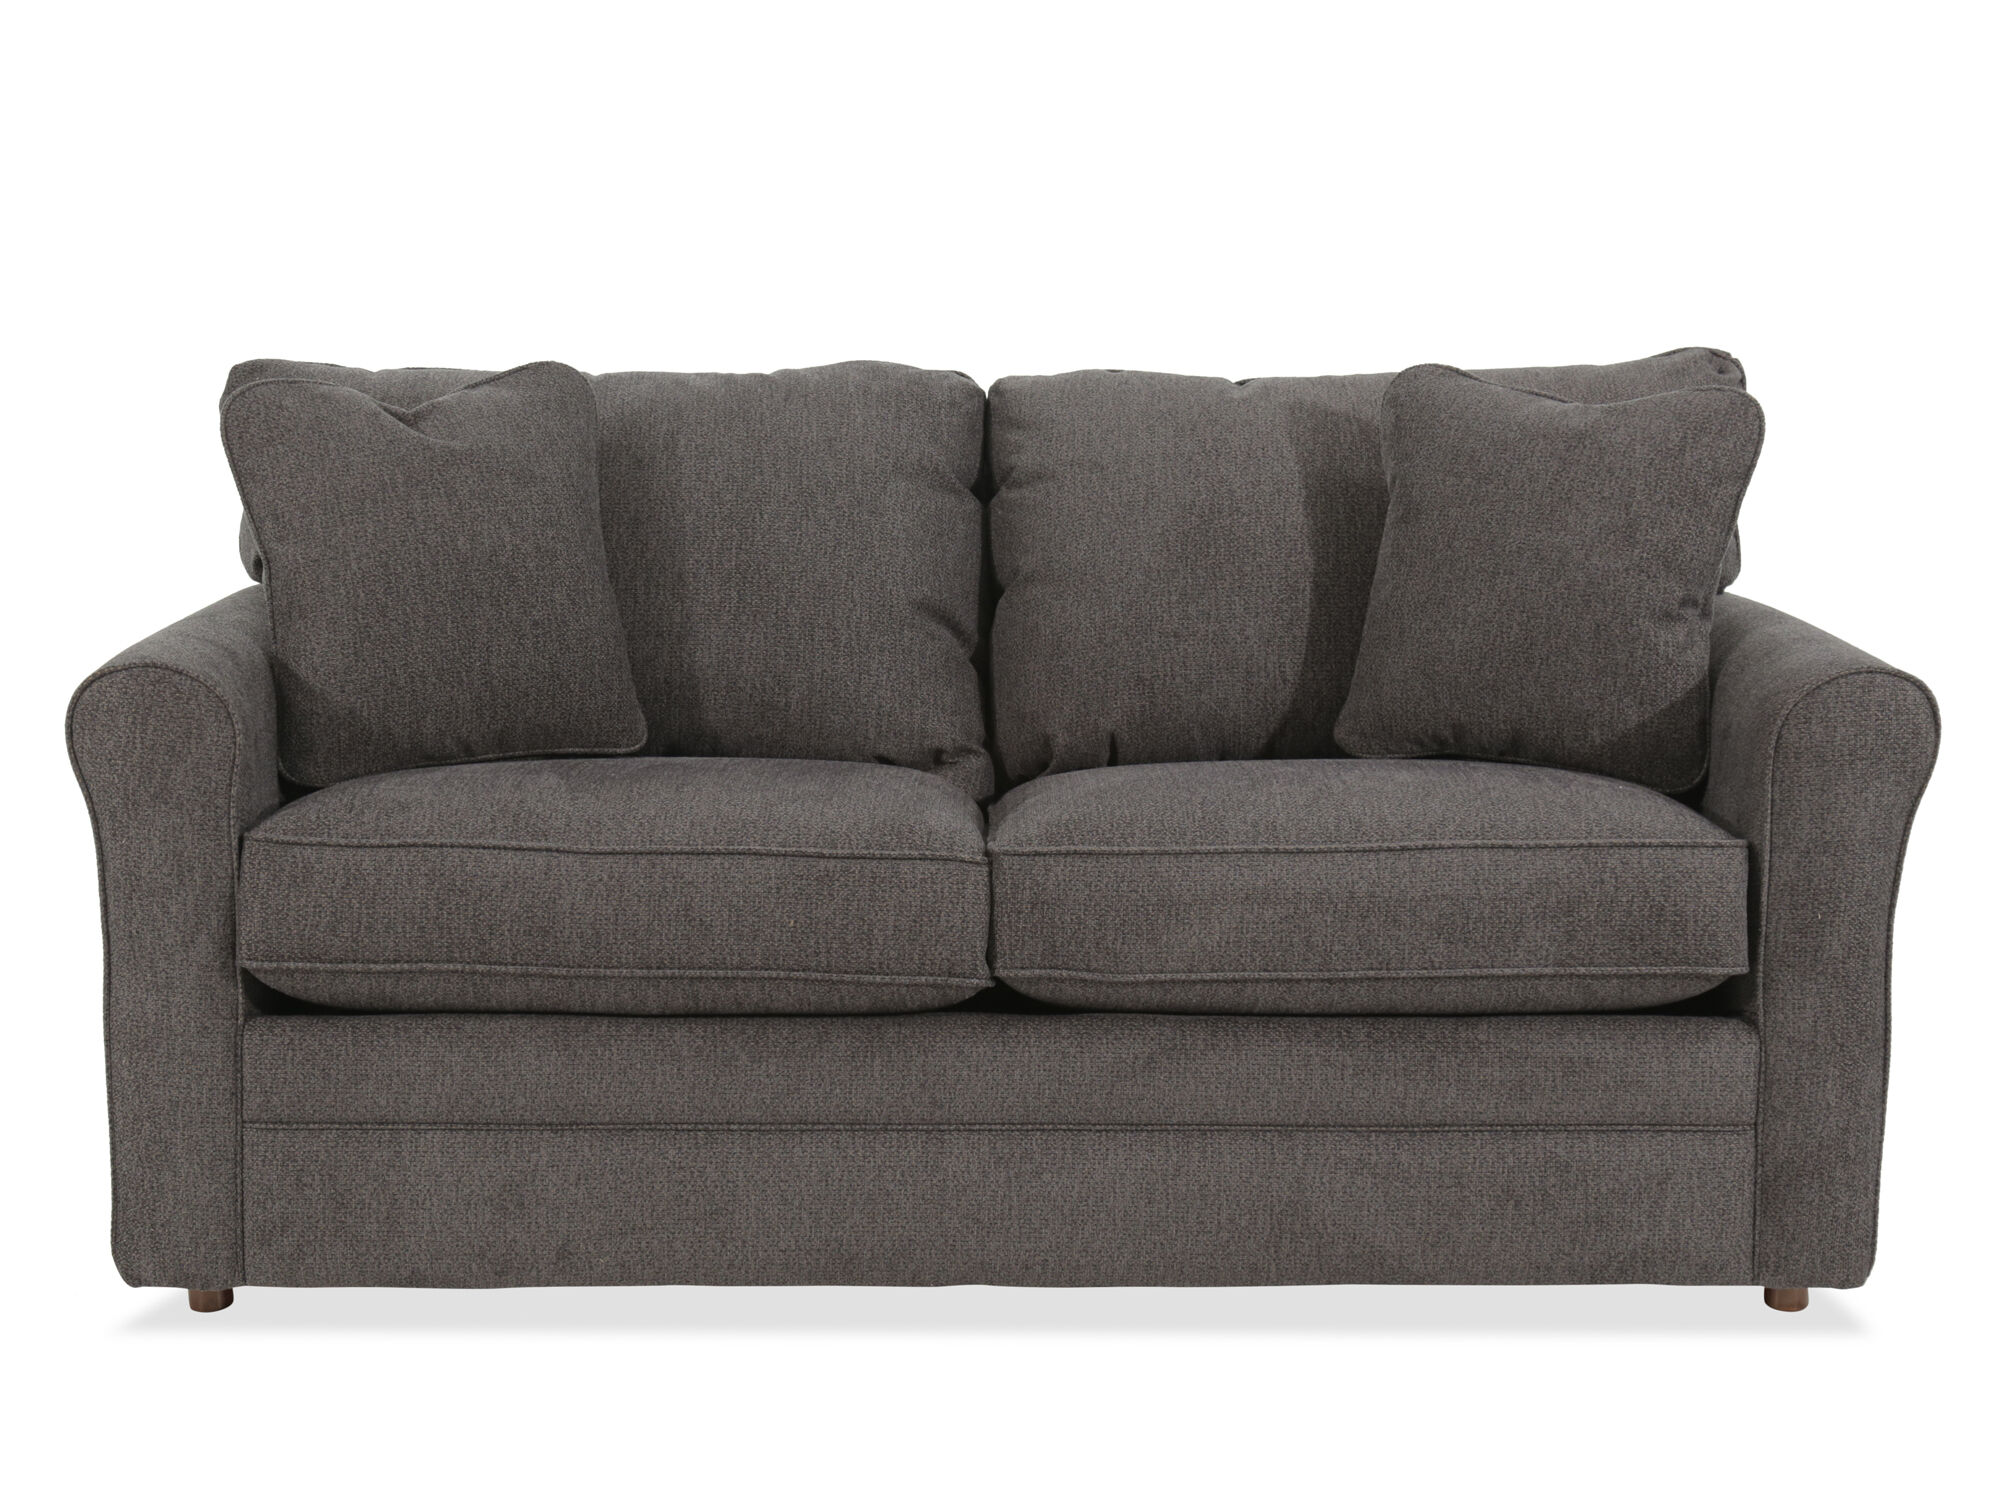 Casual 735 Full Sleeper Sofa in Gray  Mathis Brothers Furniture